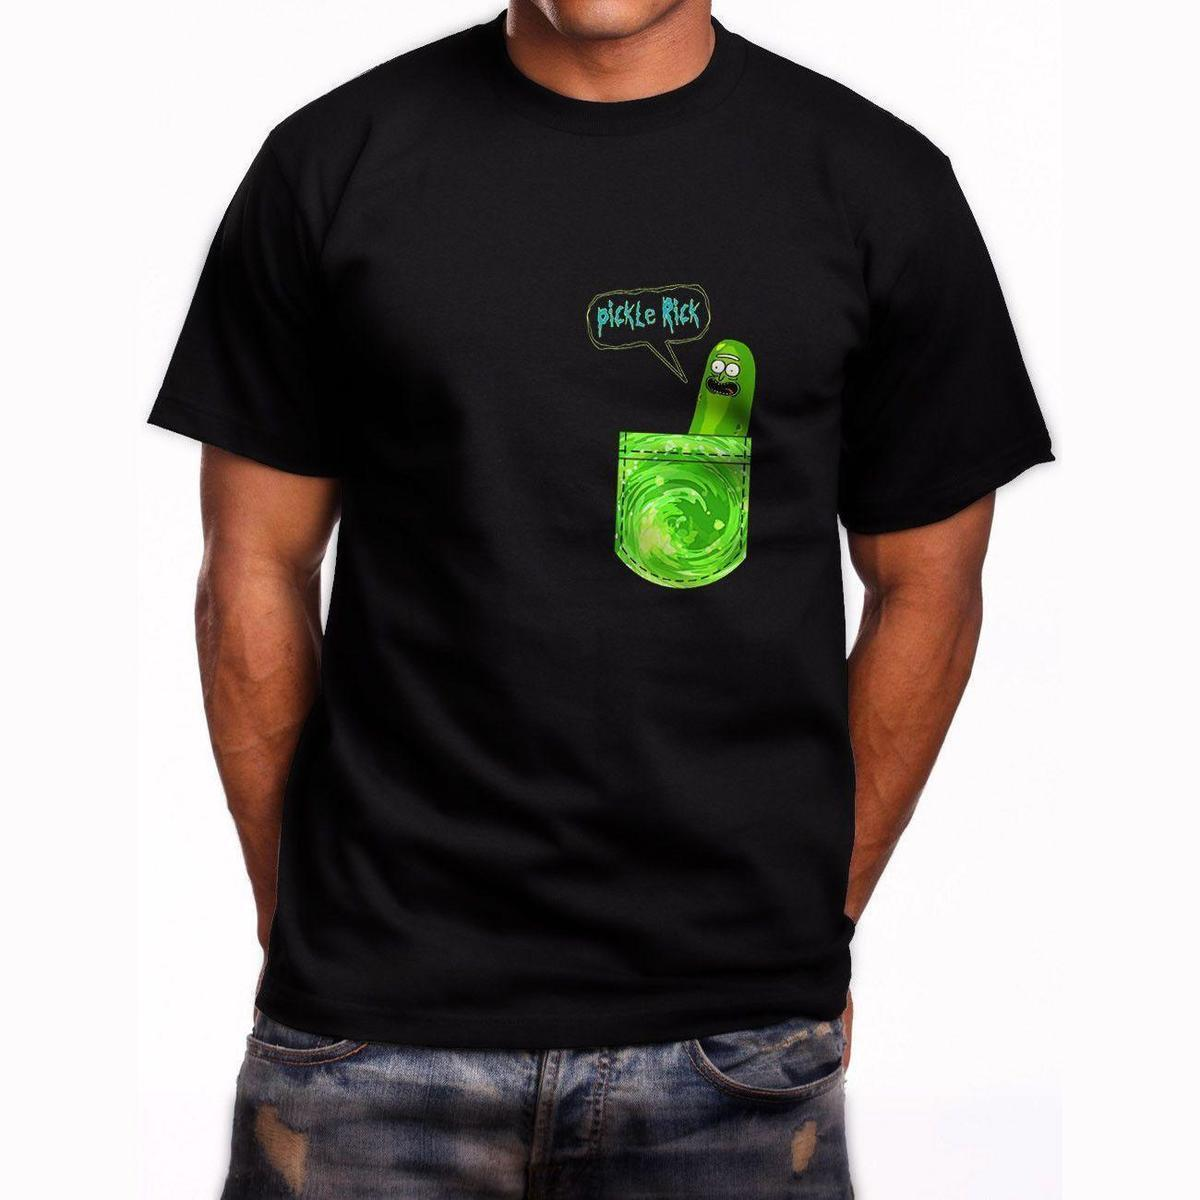 1481f4b8 New Pickle Rick Pocket T Shirt Printed T Shirt Funny T Shirts For Guys From  Linnan001, $14.67| DHgate.Com